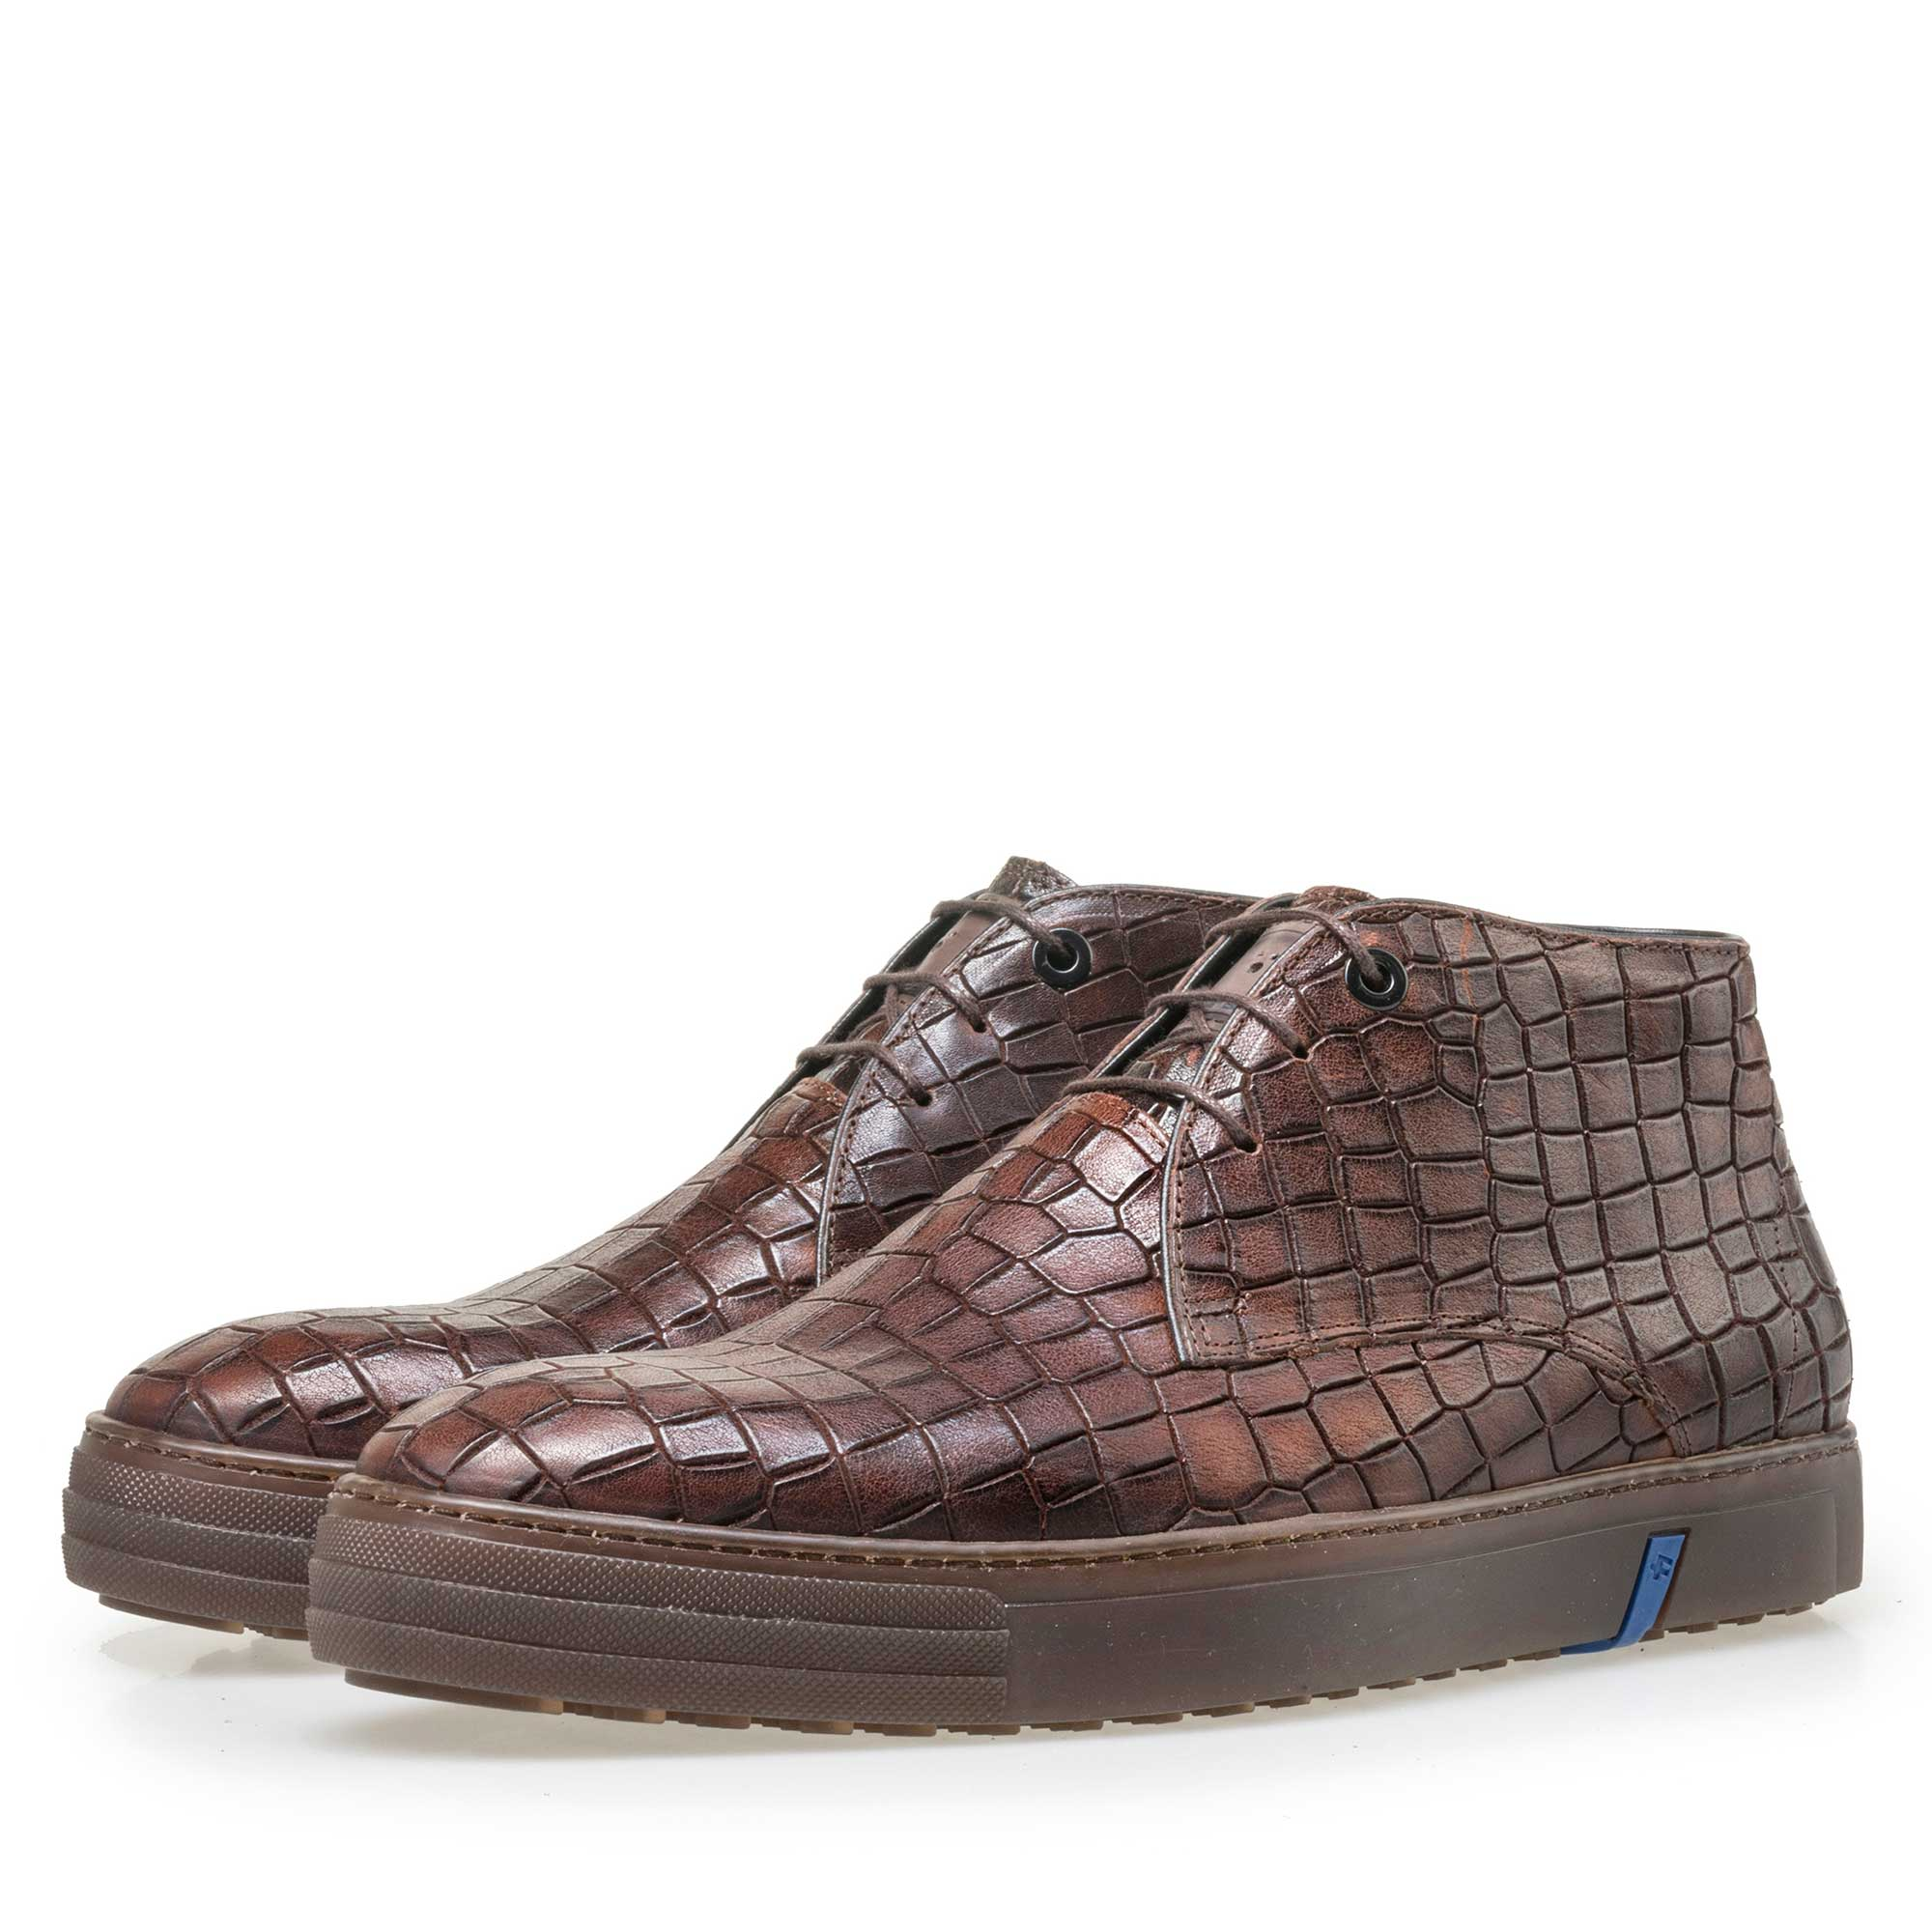 10941/10 - Floris van Bommel men's mid-high brown city sneaker finished with a crocodile print